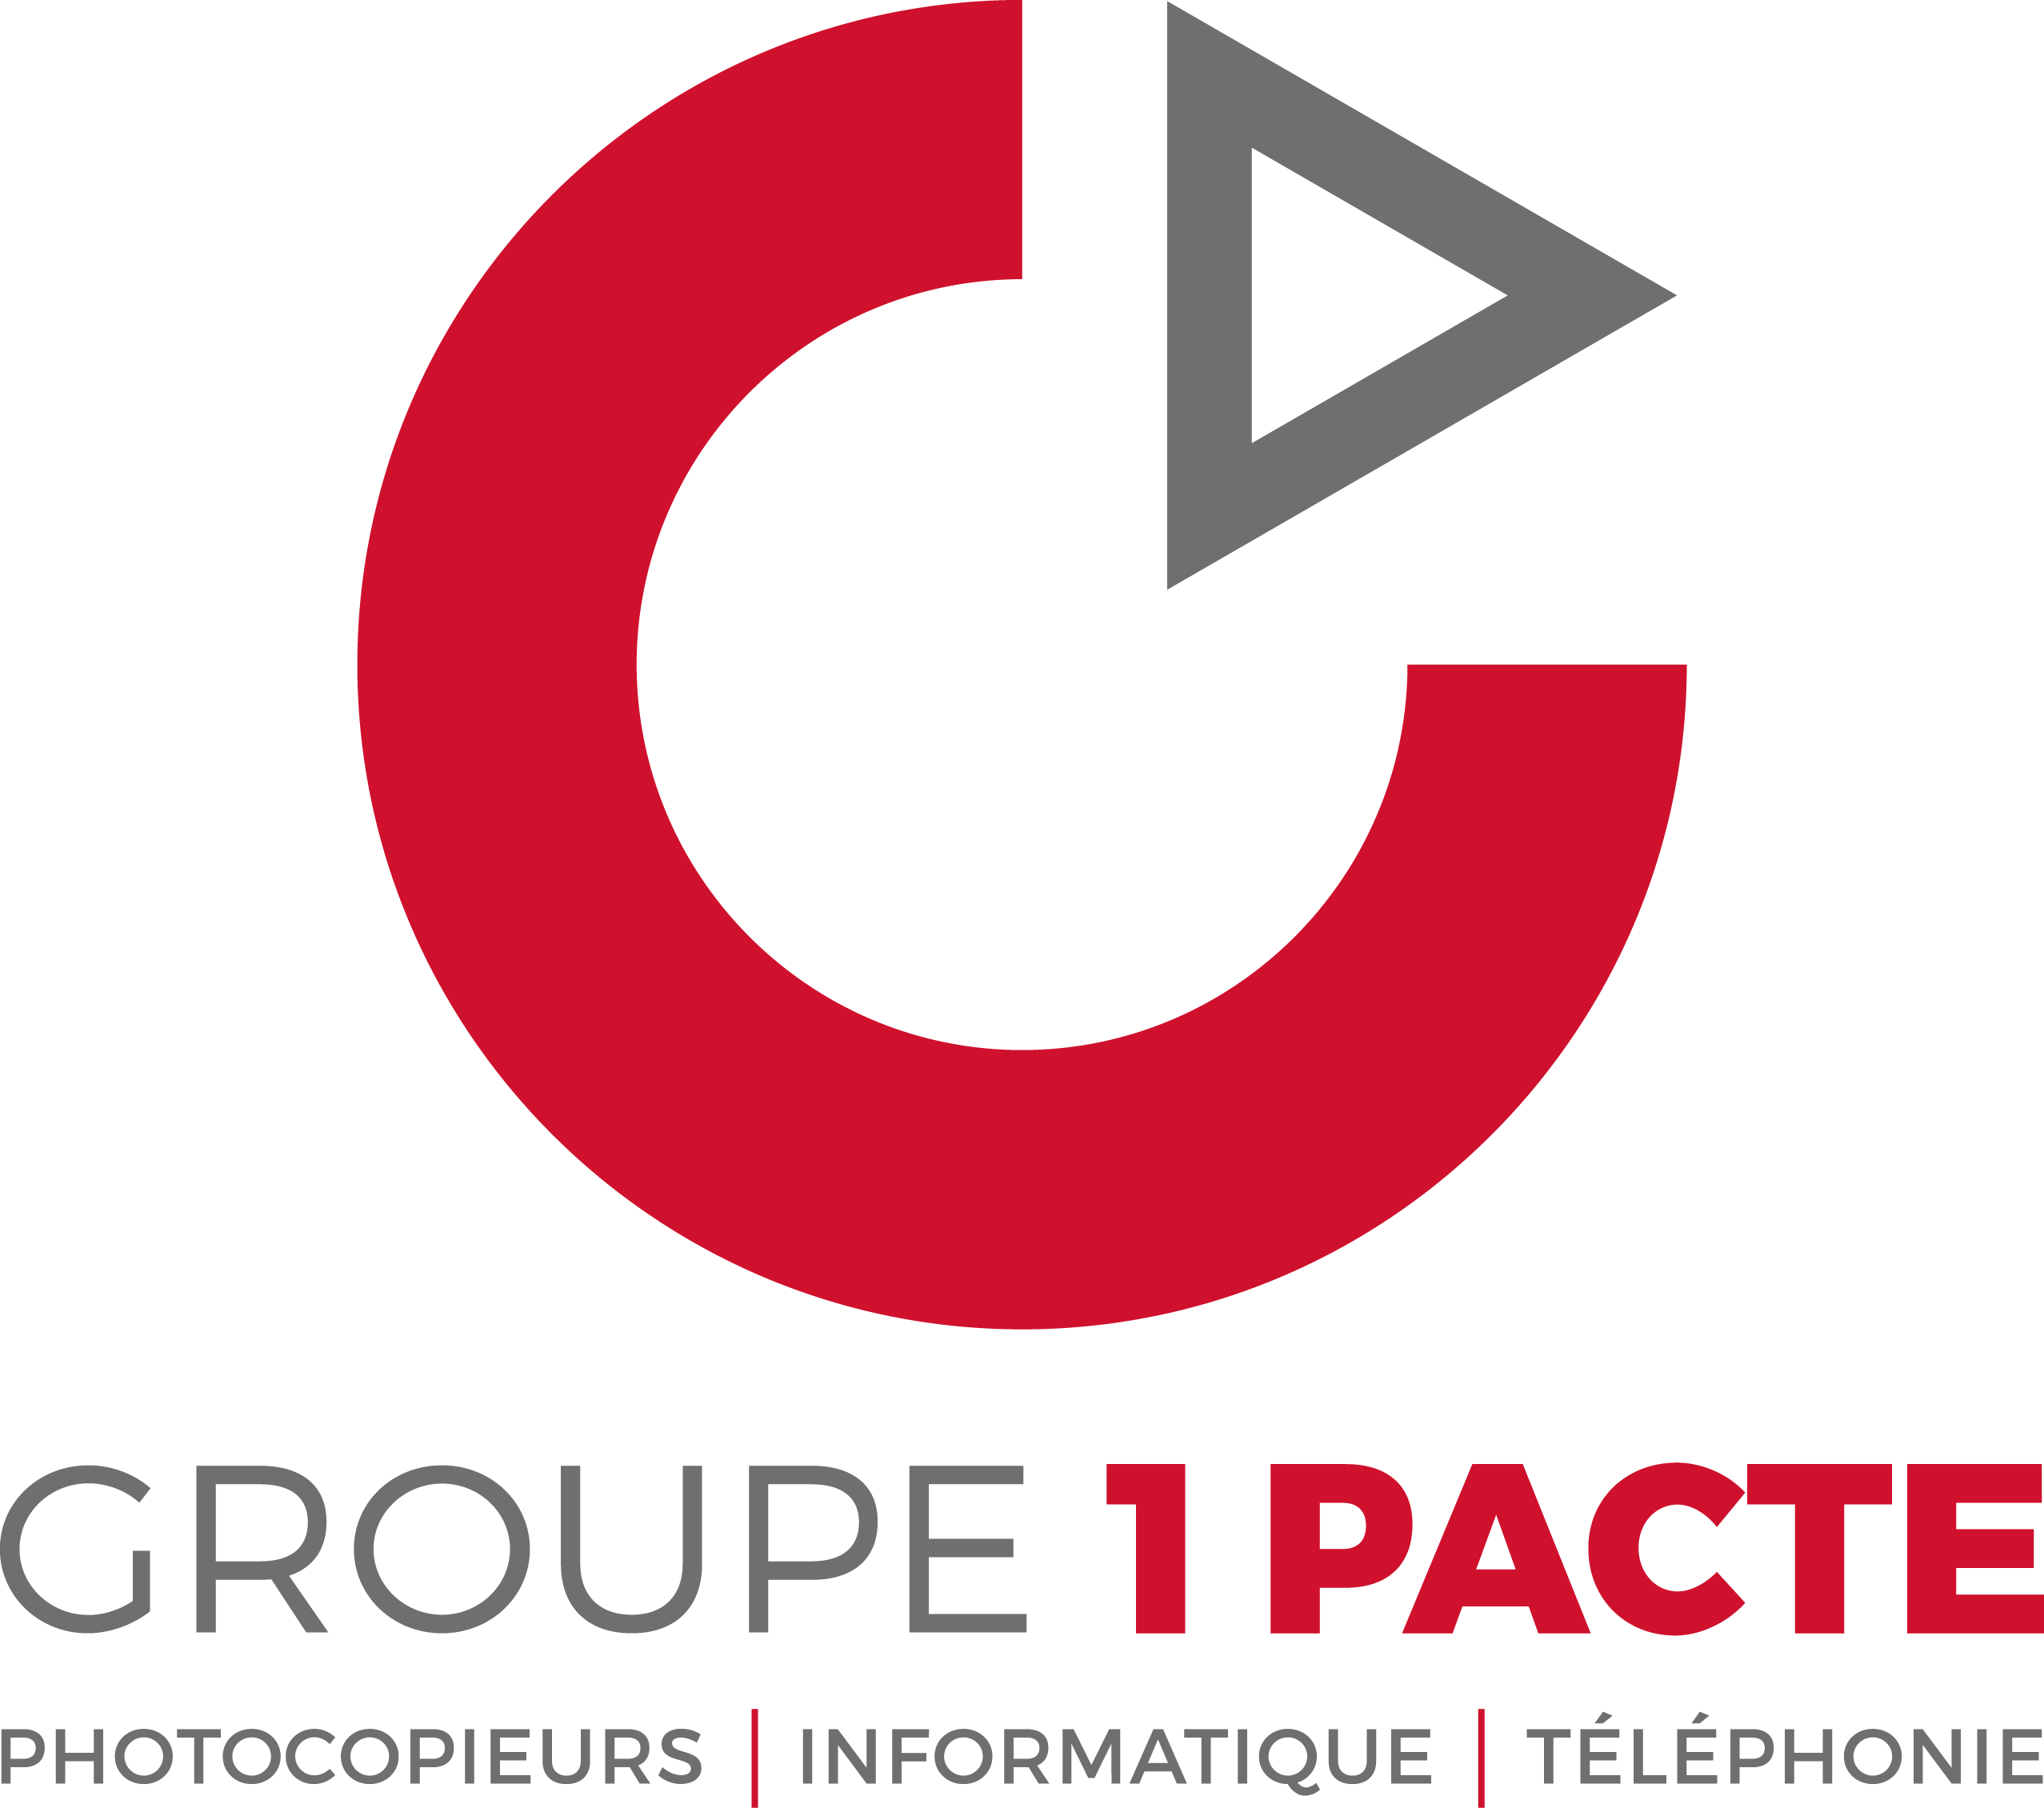 LOGO GROUPE 1 PACTE